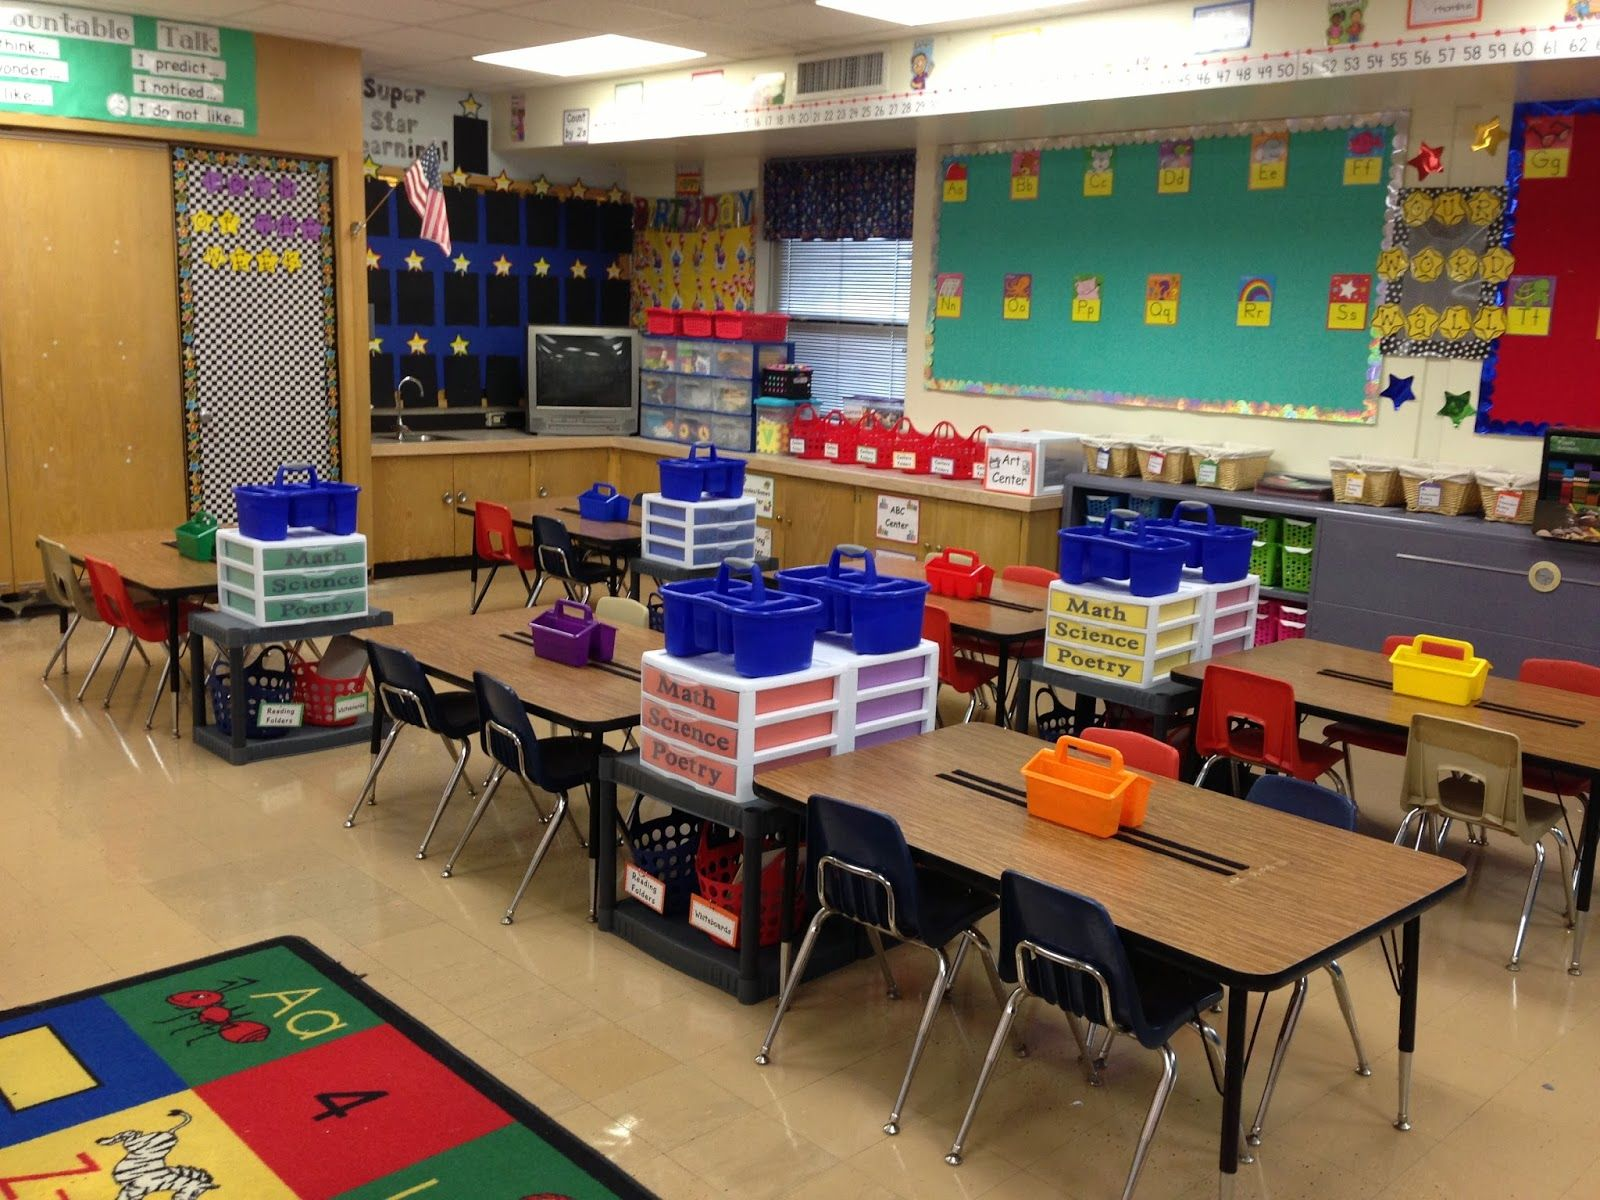 Classroom Setup And Design ~ No matter what grade i teach next year am thinking of